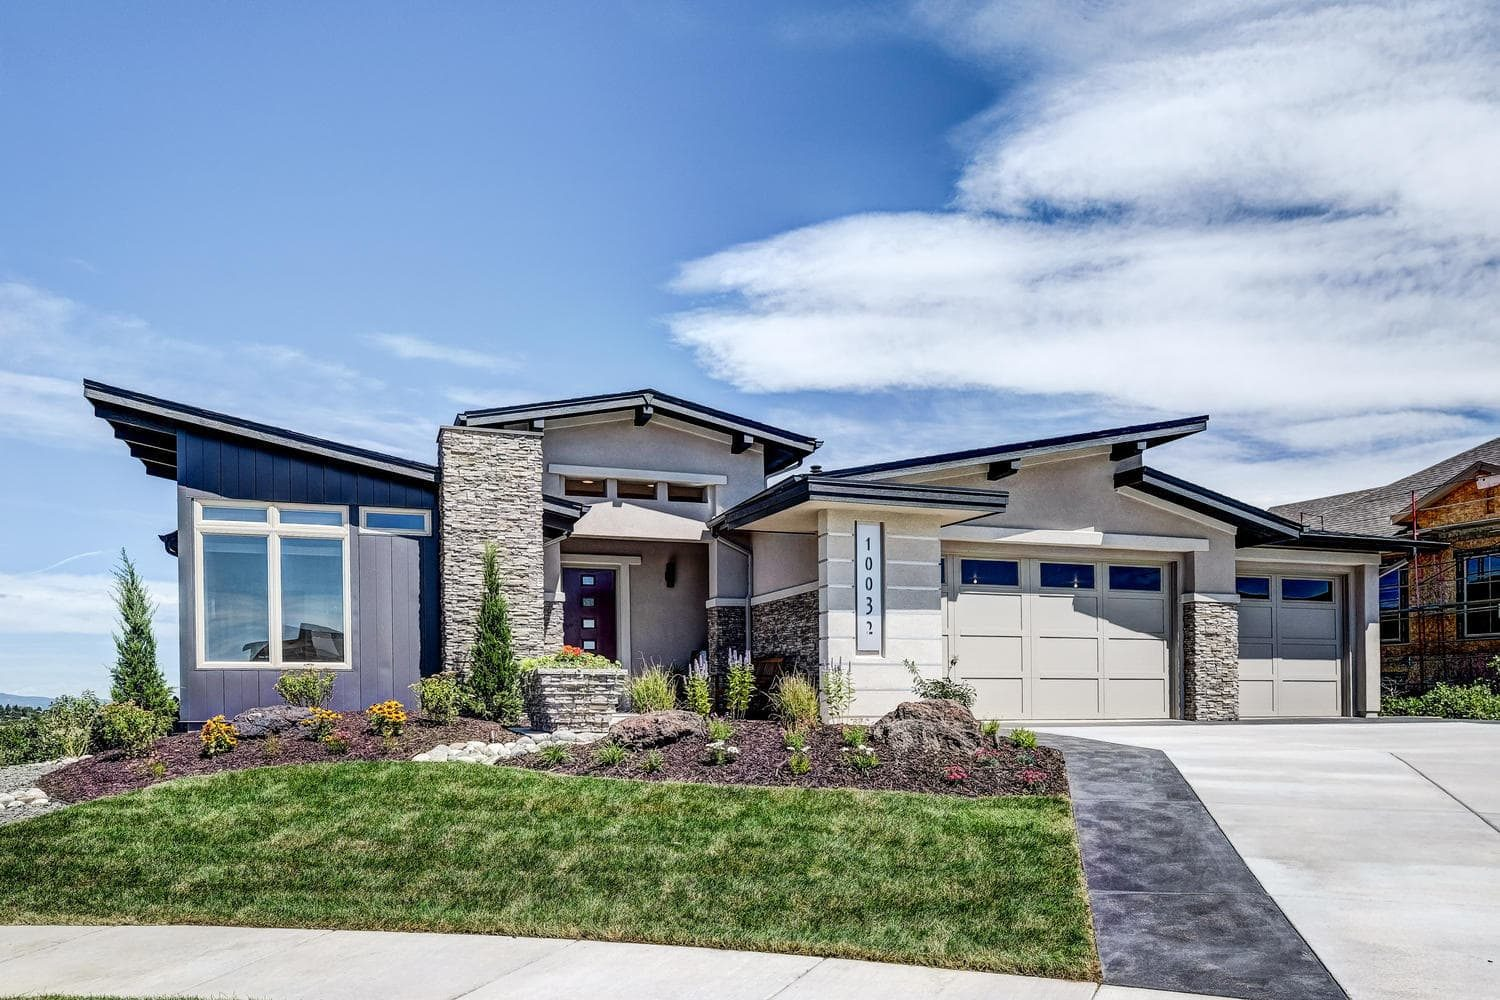 Modern Architectural Styles in Colorado Homes  Colorado Real Estate Group